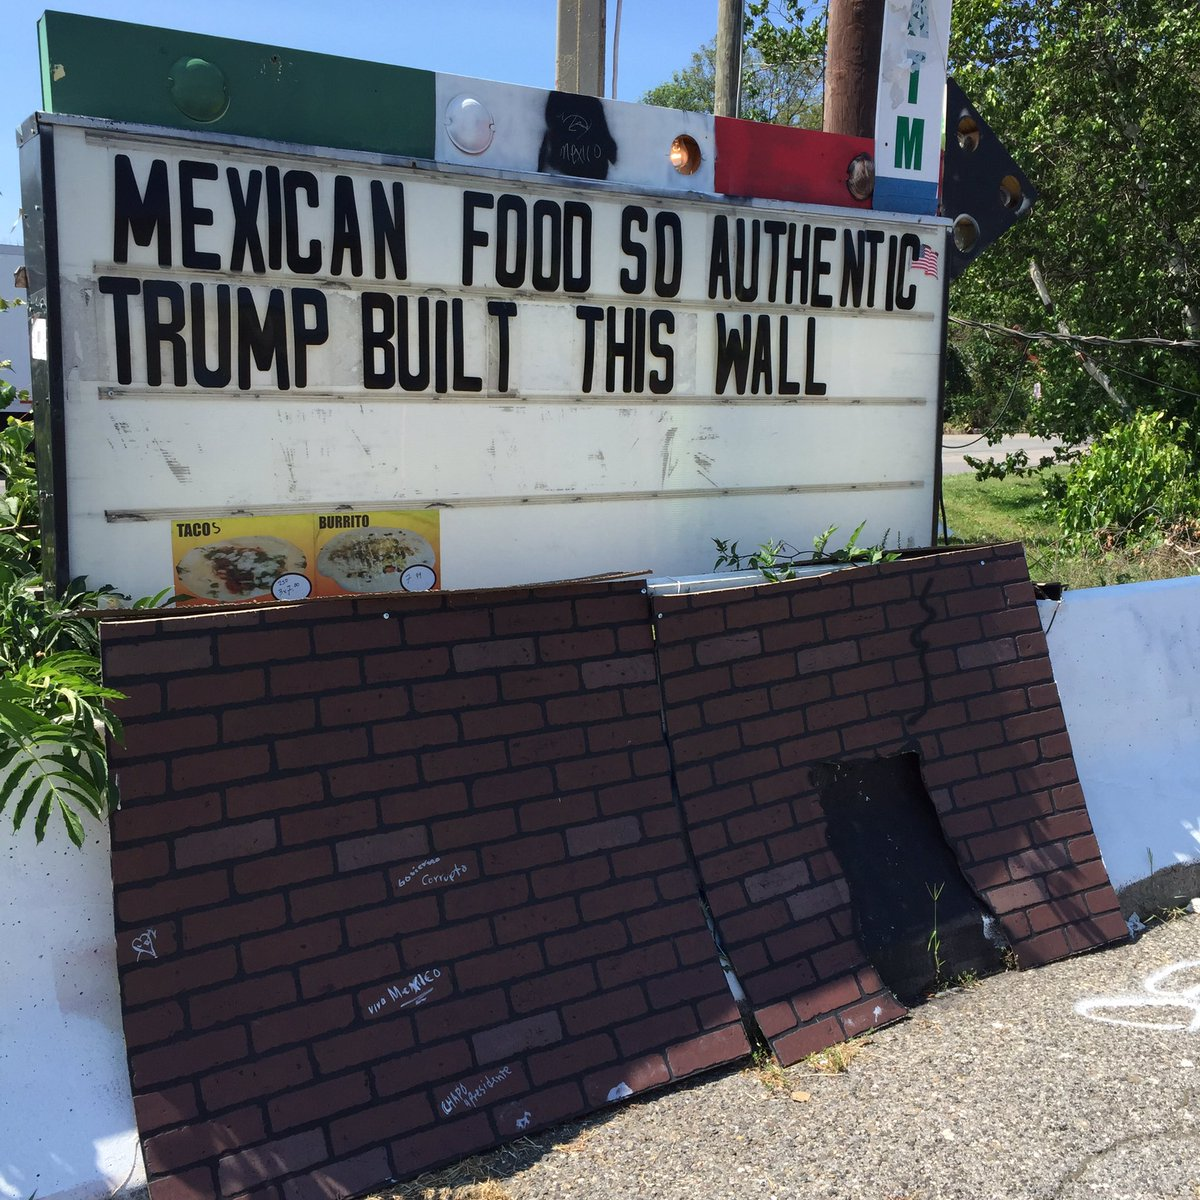 In Pennsylvania, at Zapata taco stand, off route 93. https://t.co/dc6TCqyTtt